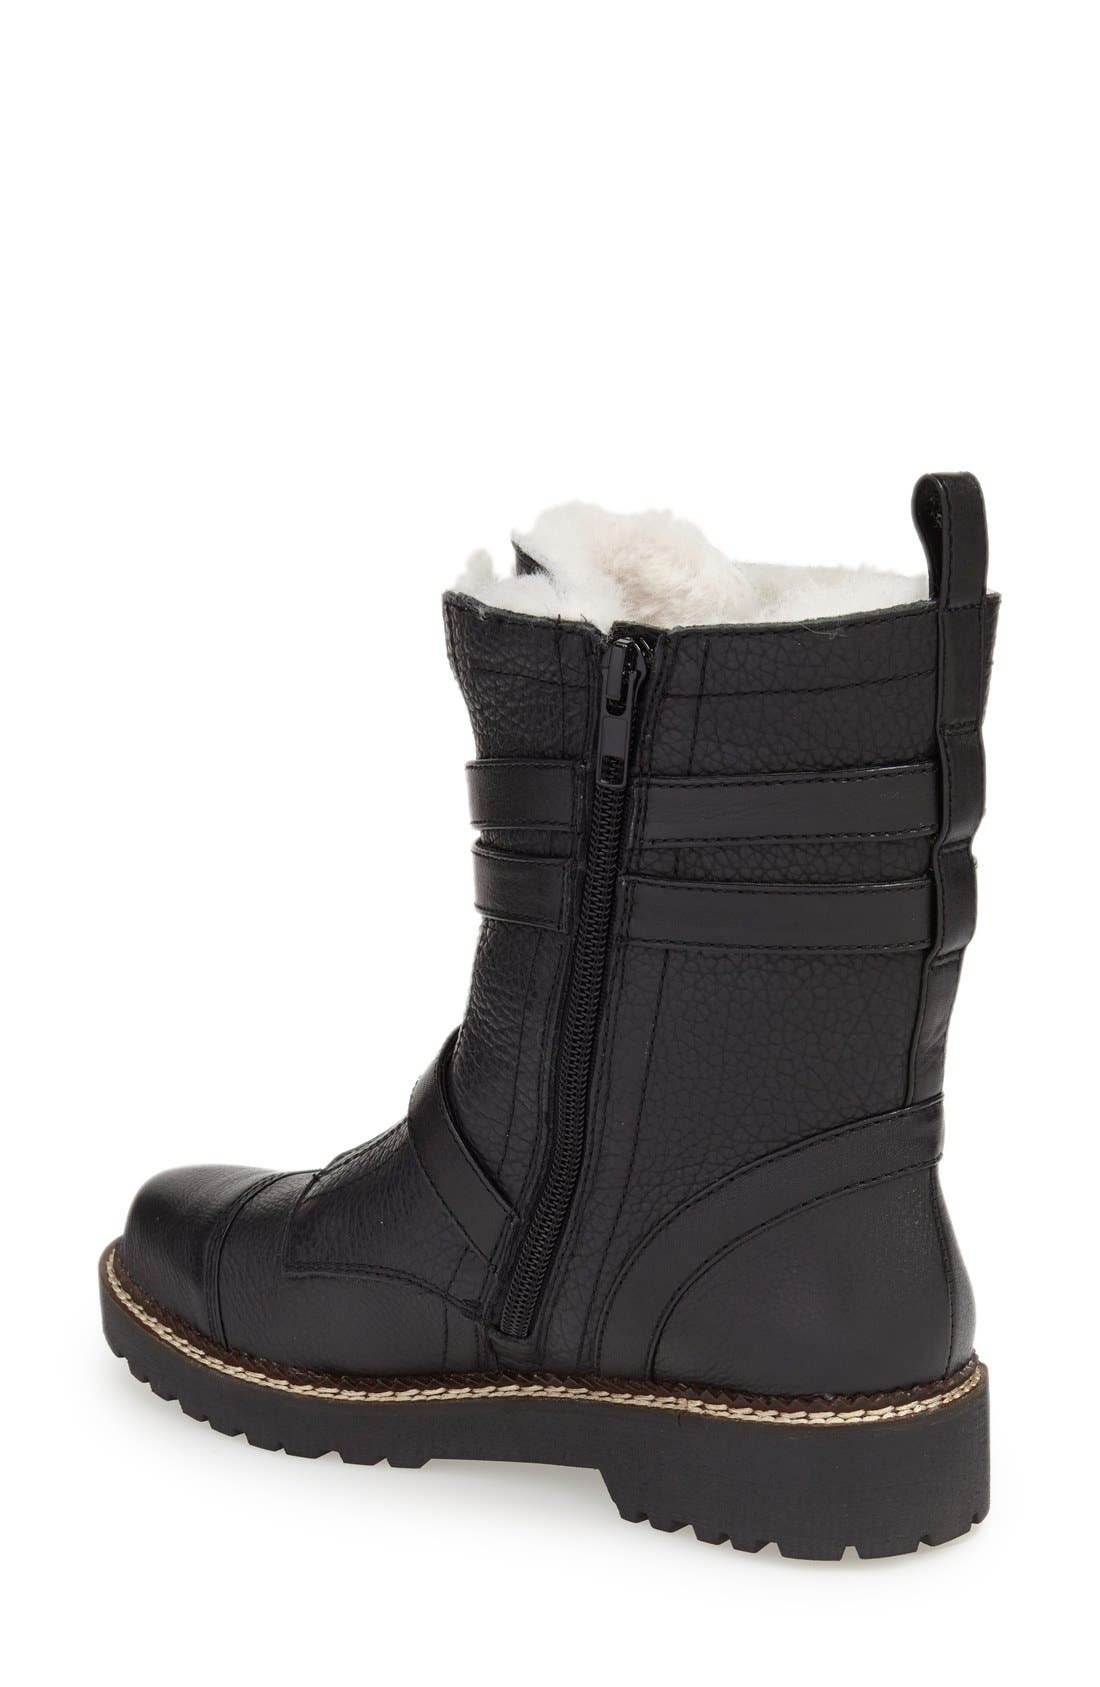 'Pelli' Genuine Shearling Lined Boot,                             Alternate thumbnail 2, color,                             004